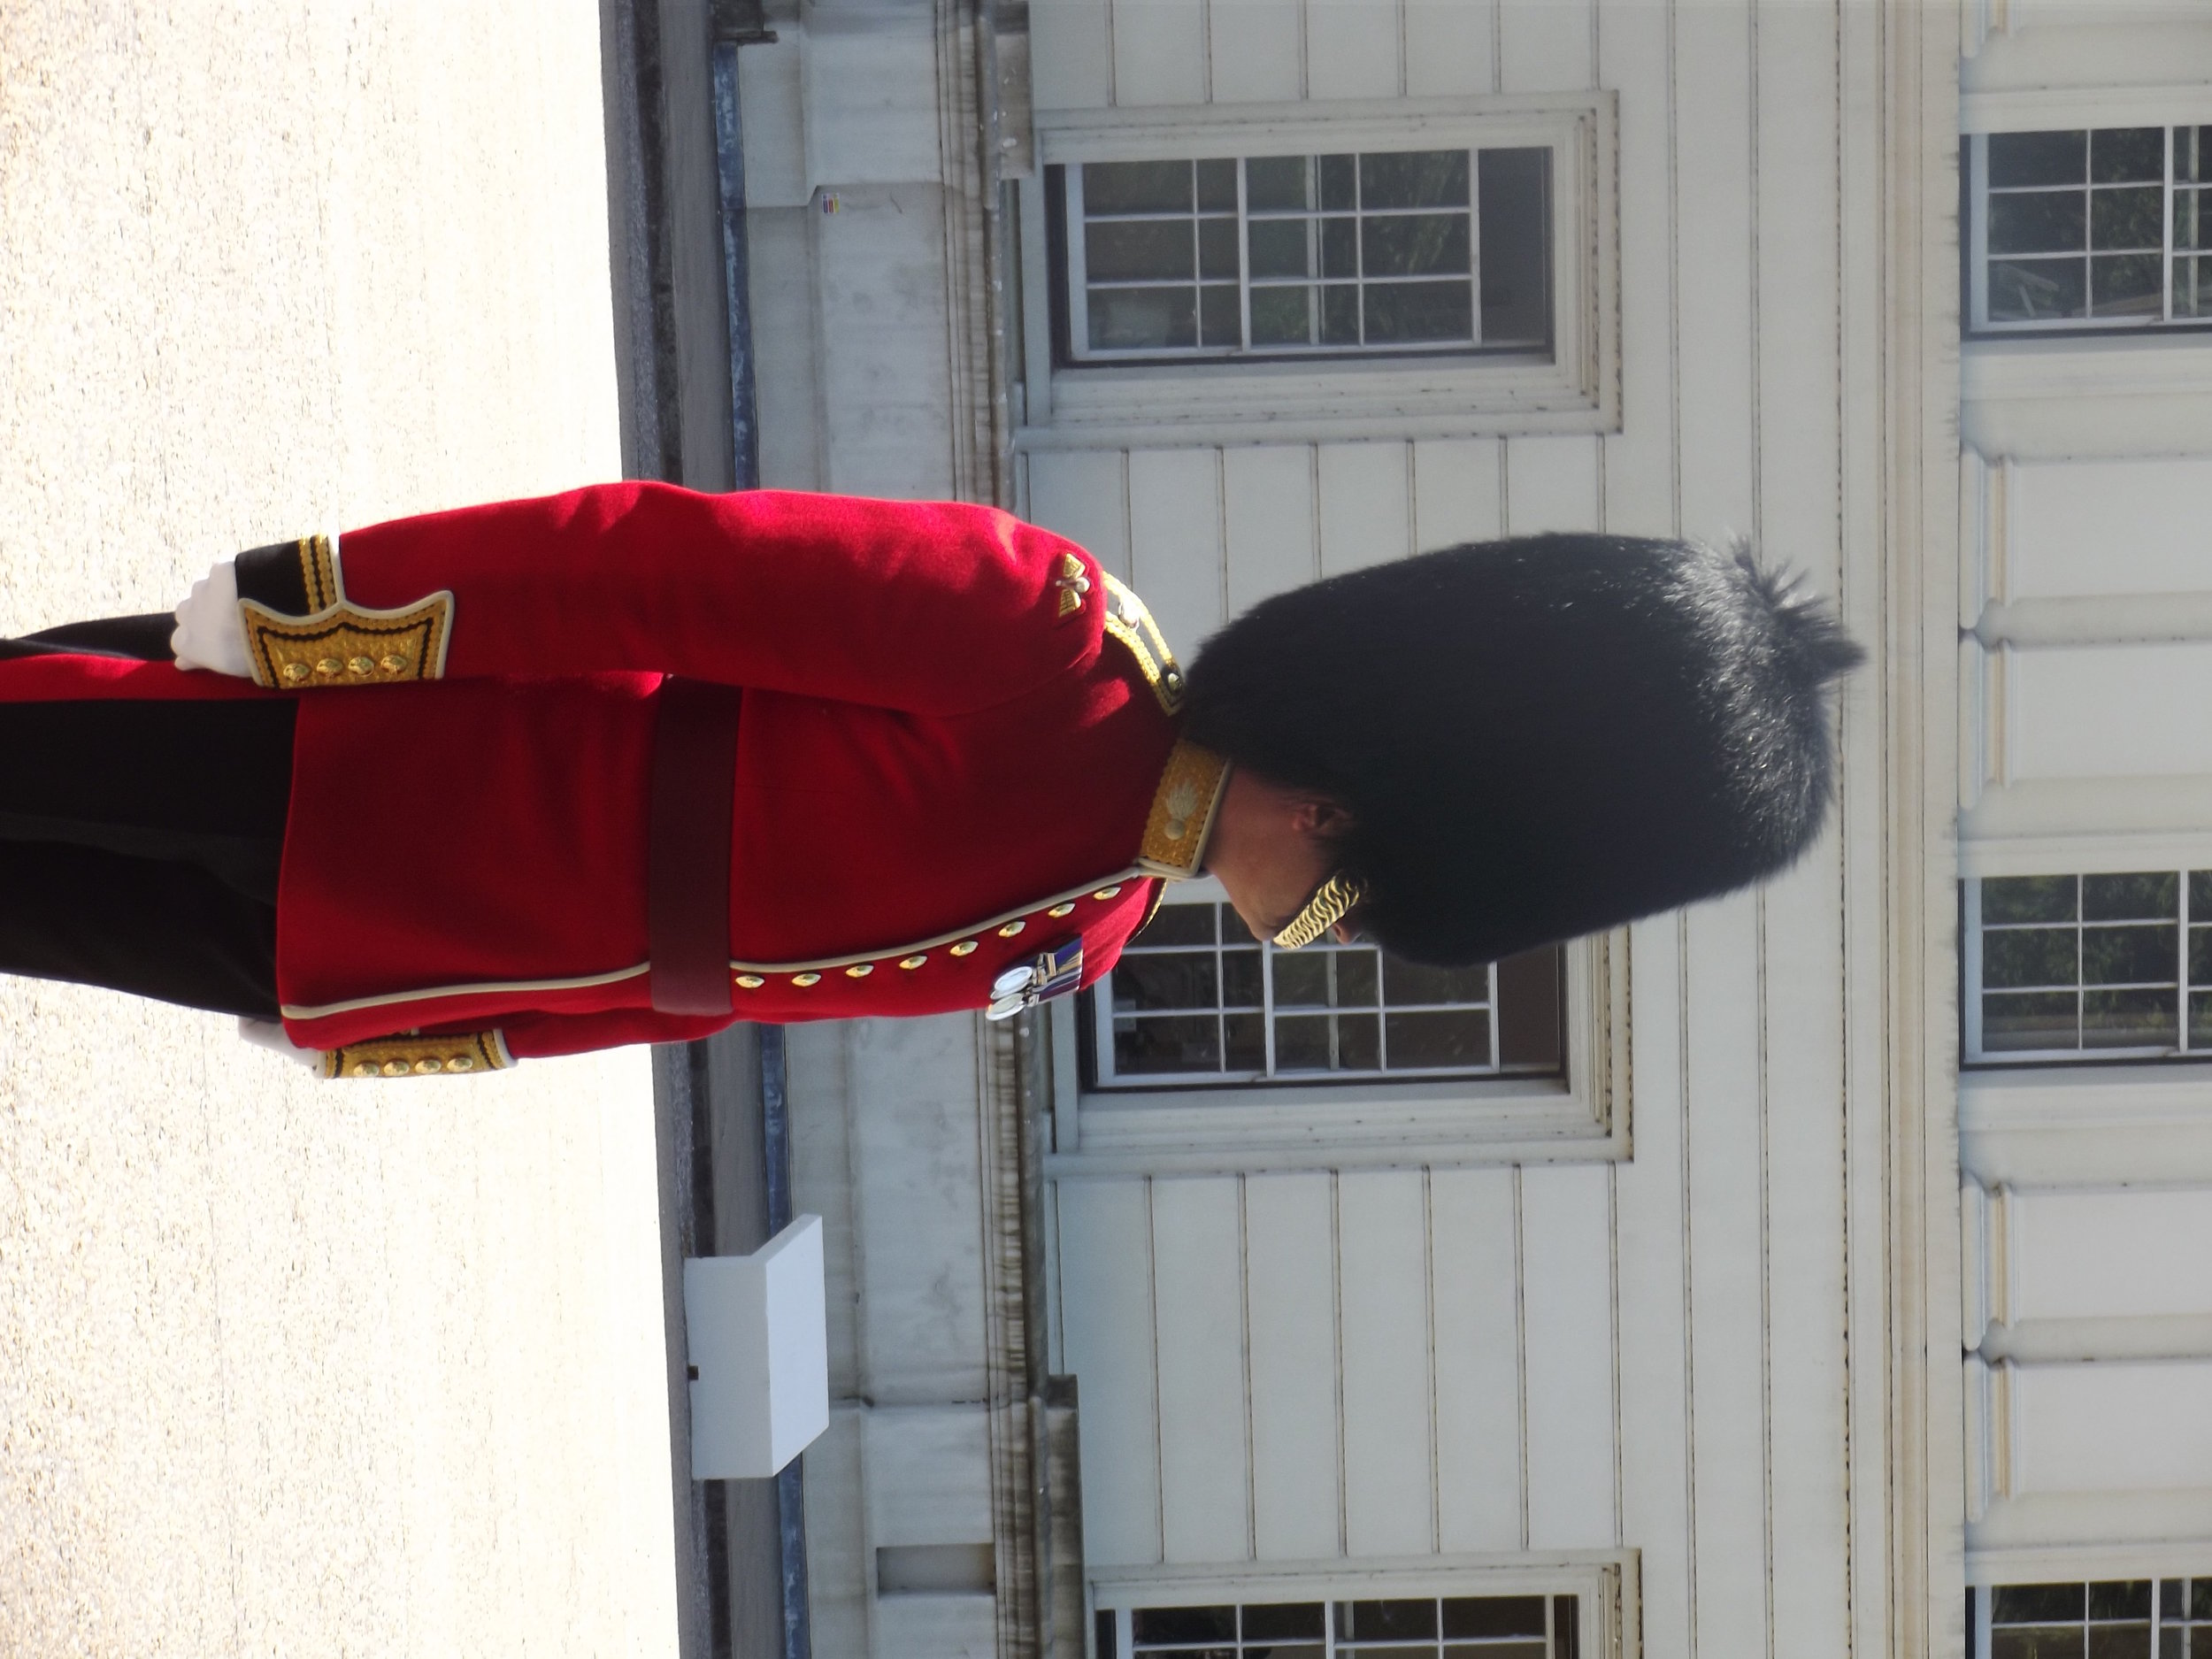 what-to-do-in-london-band-of-scots-guard3.jpg